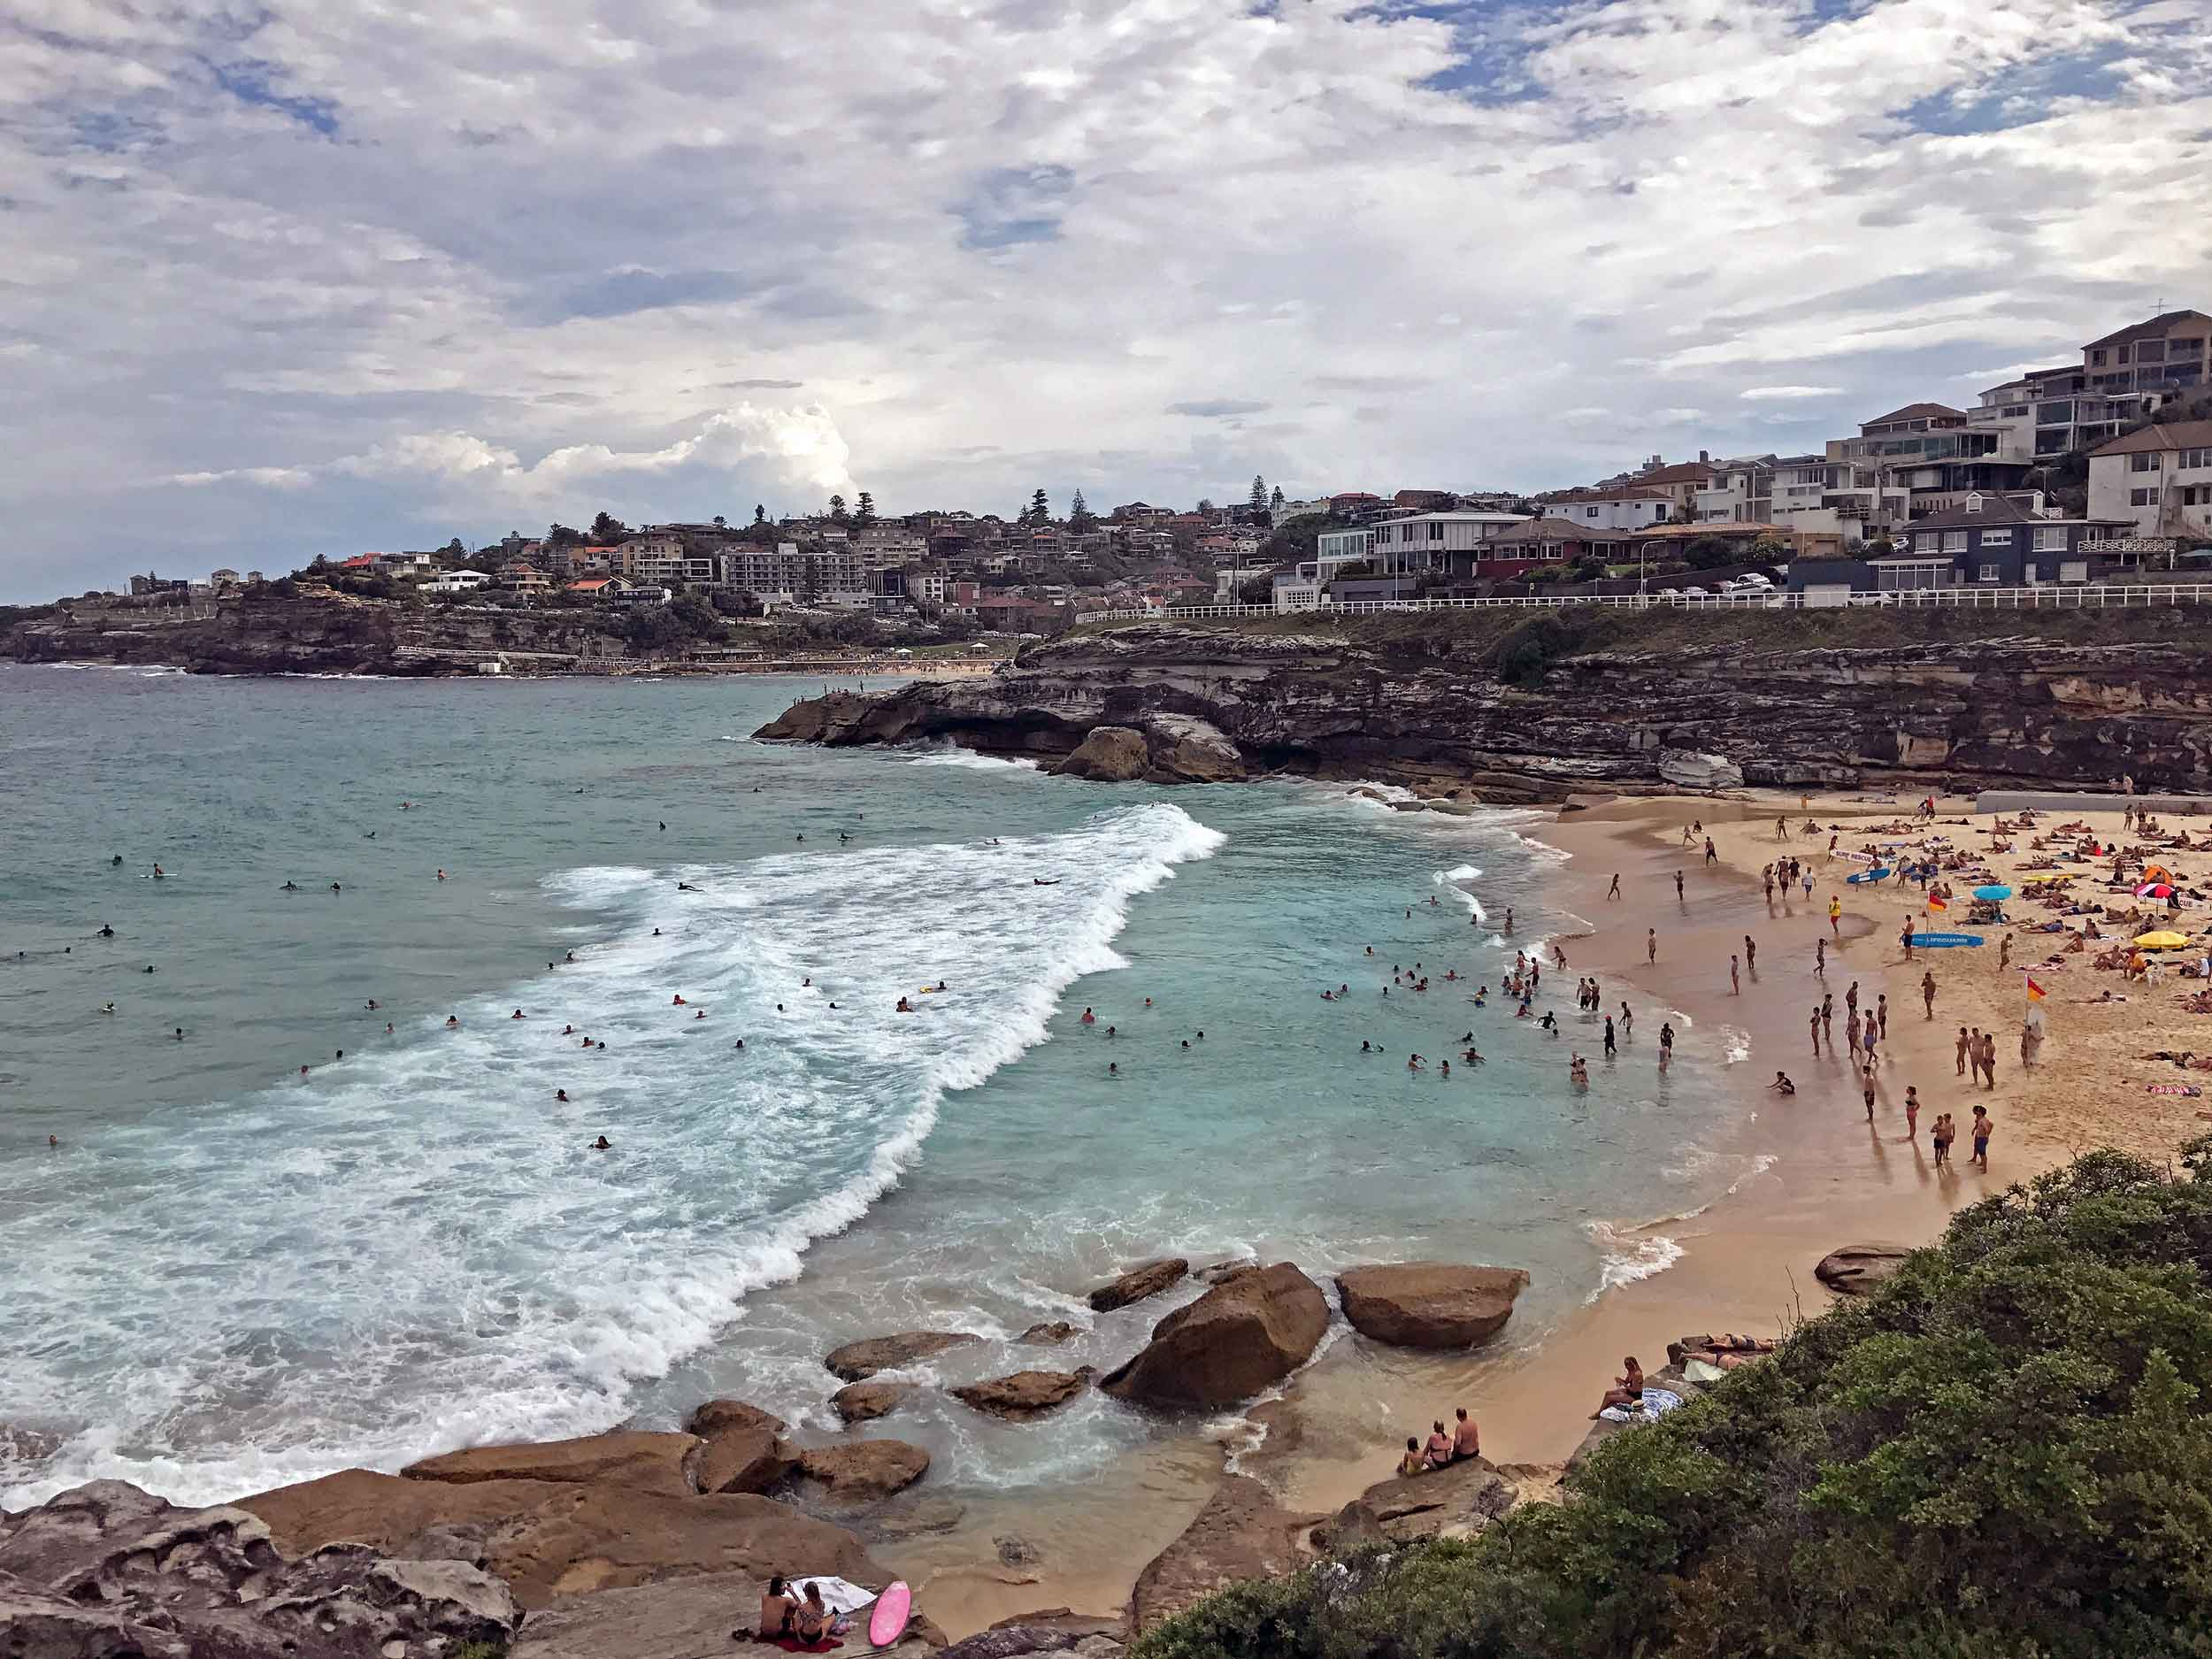 A heatwave swept Sydney, forcing most everyone to the beach, including small Tamarama (Feb 5).